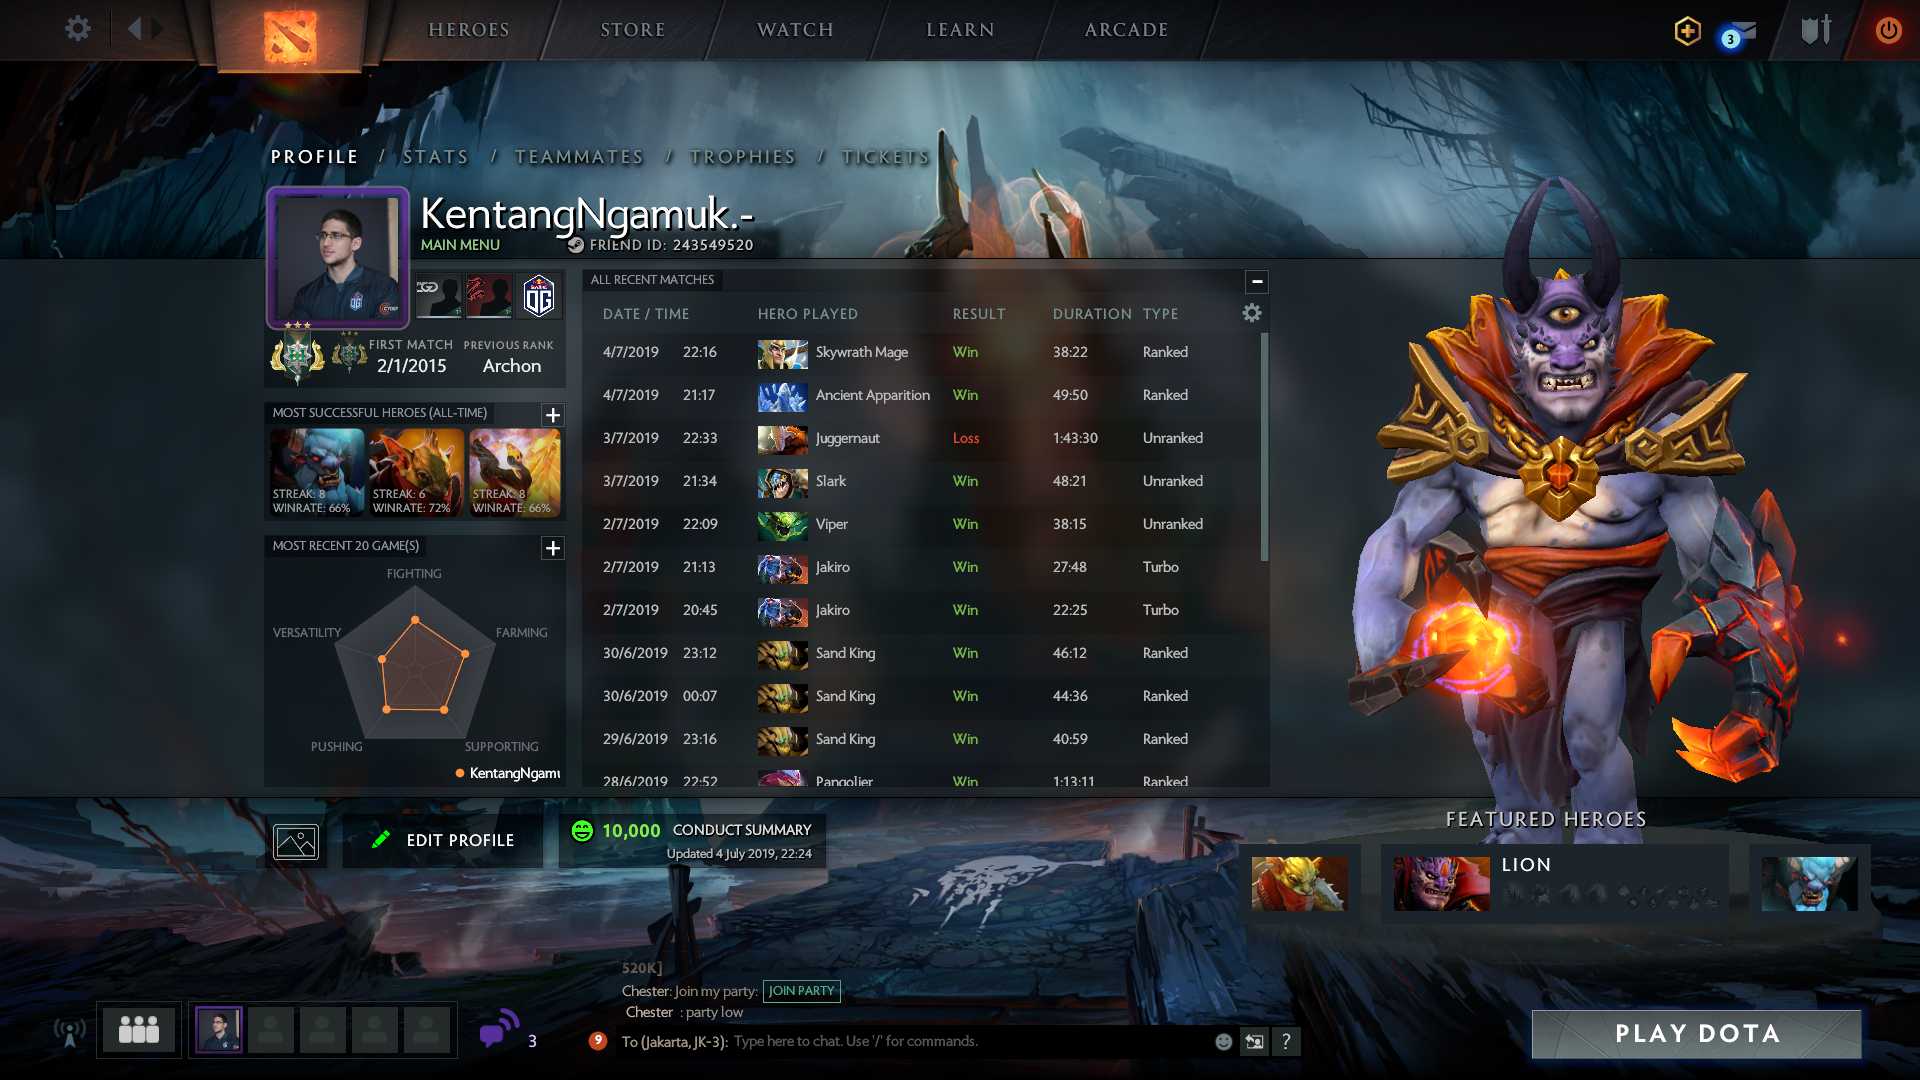 Dota 2 Tips And Trick Series Part 1 How To Survive In Crusader And Archon Bracket As Role Support By Hisyam Fadhil Medium